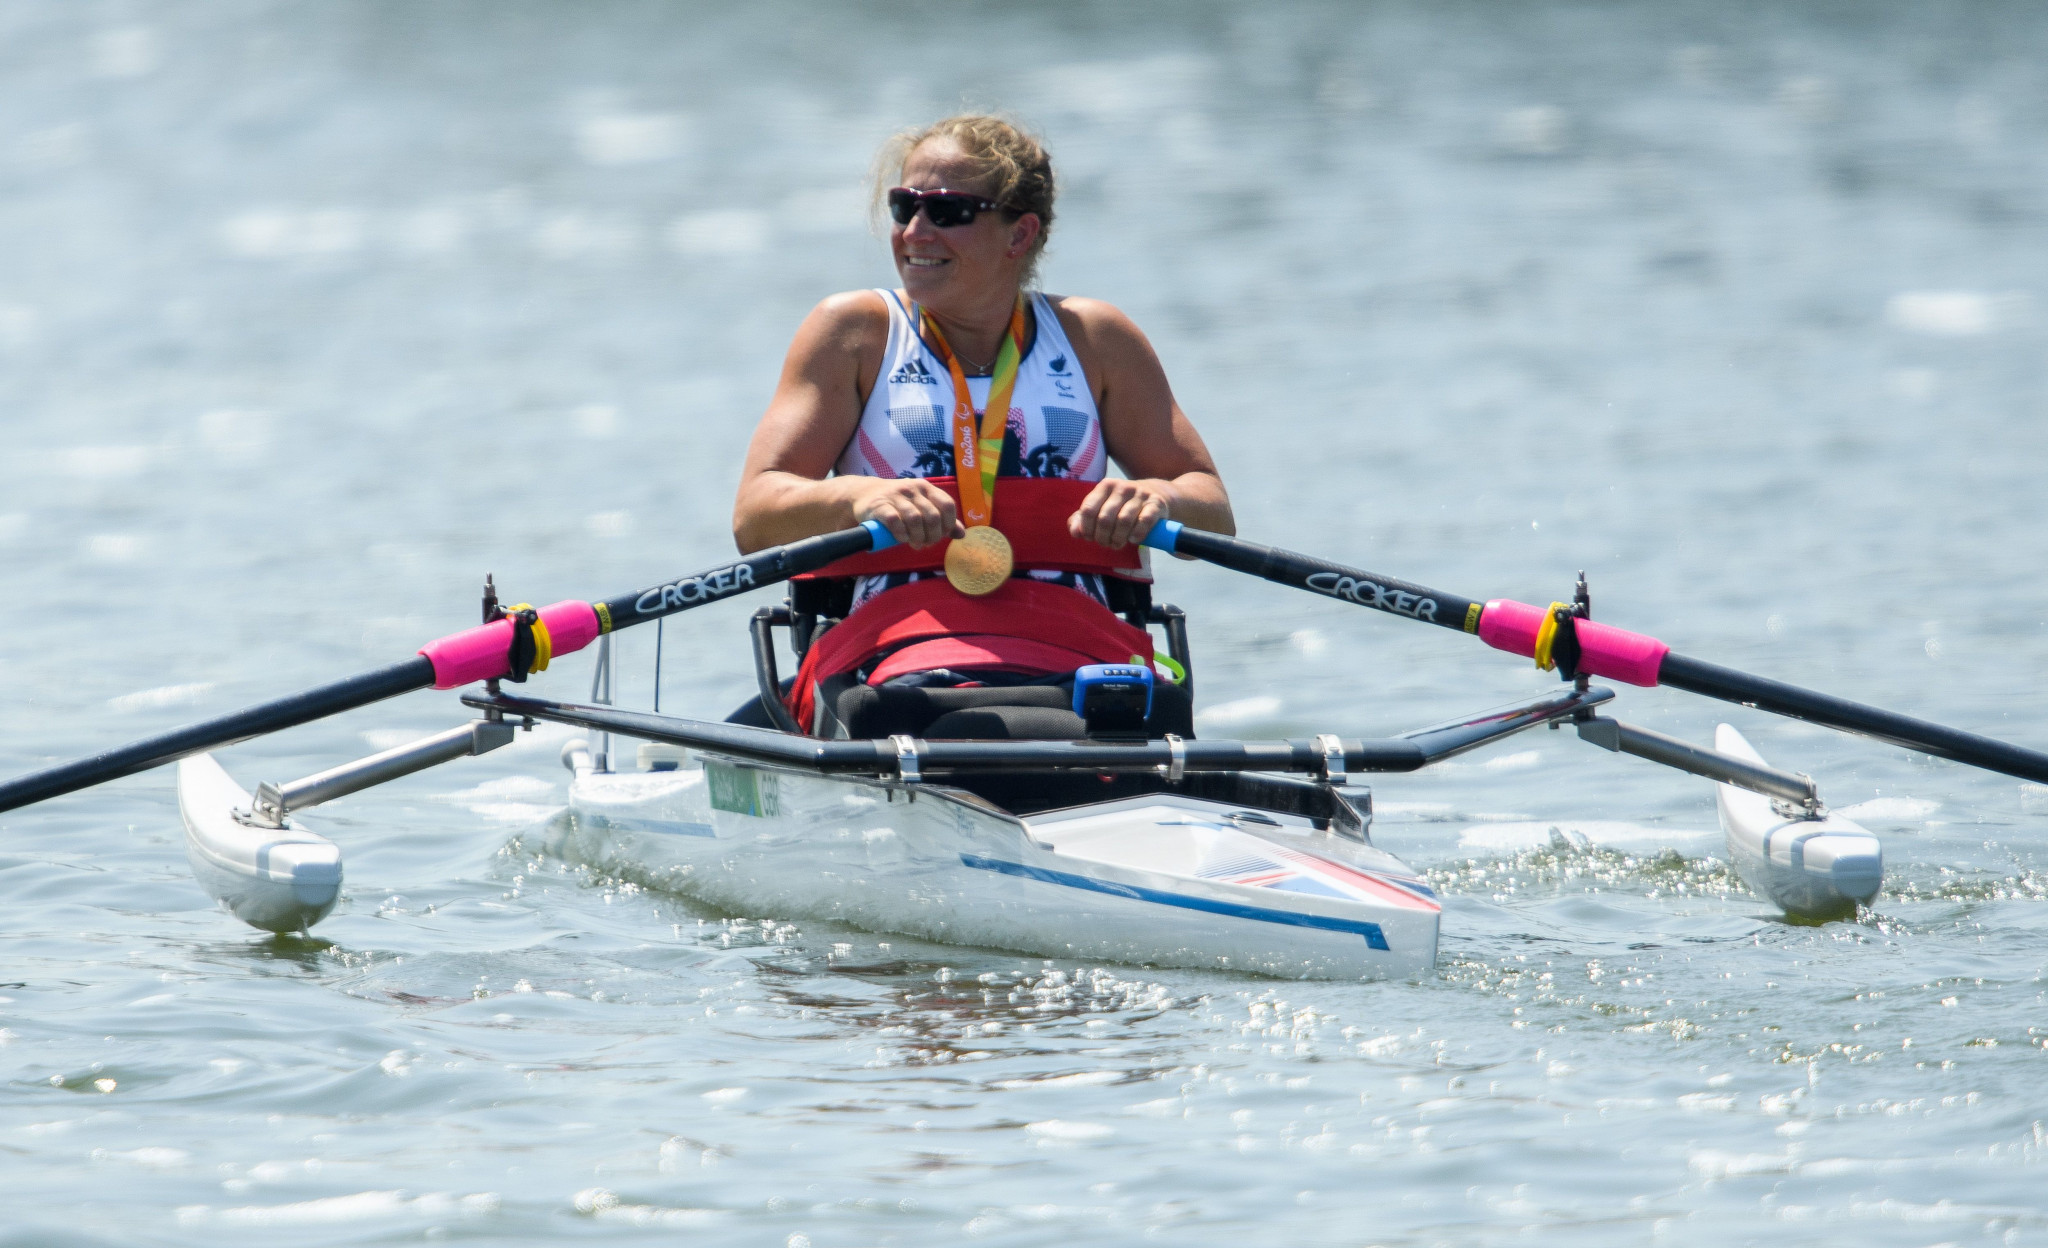 Rachel Morris won gold in the women's single sculls at Rio 2016 ©Getty Images